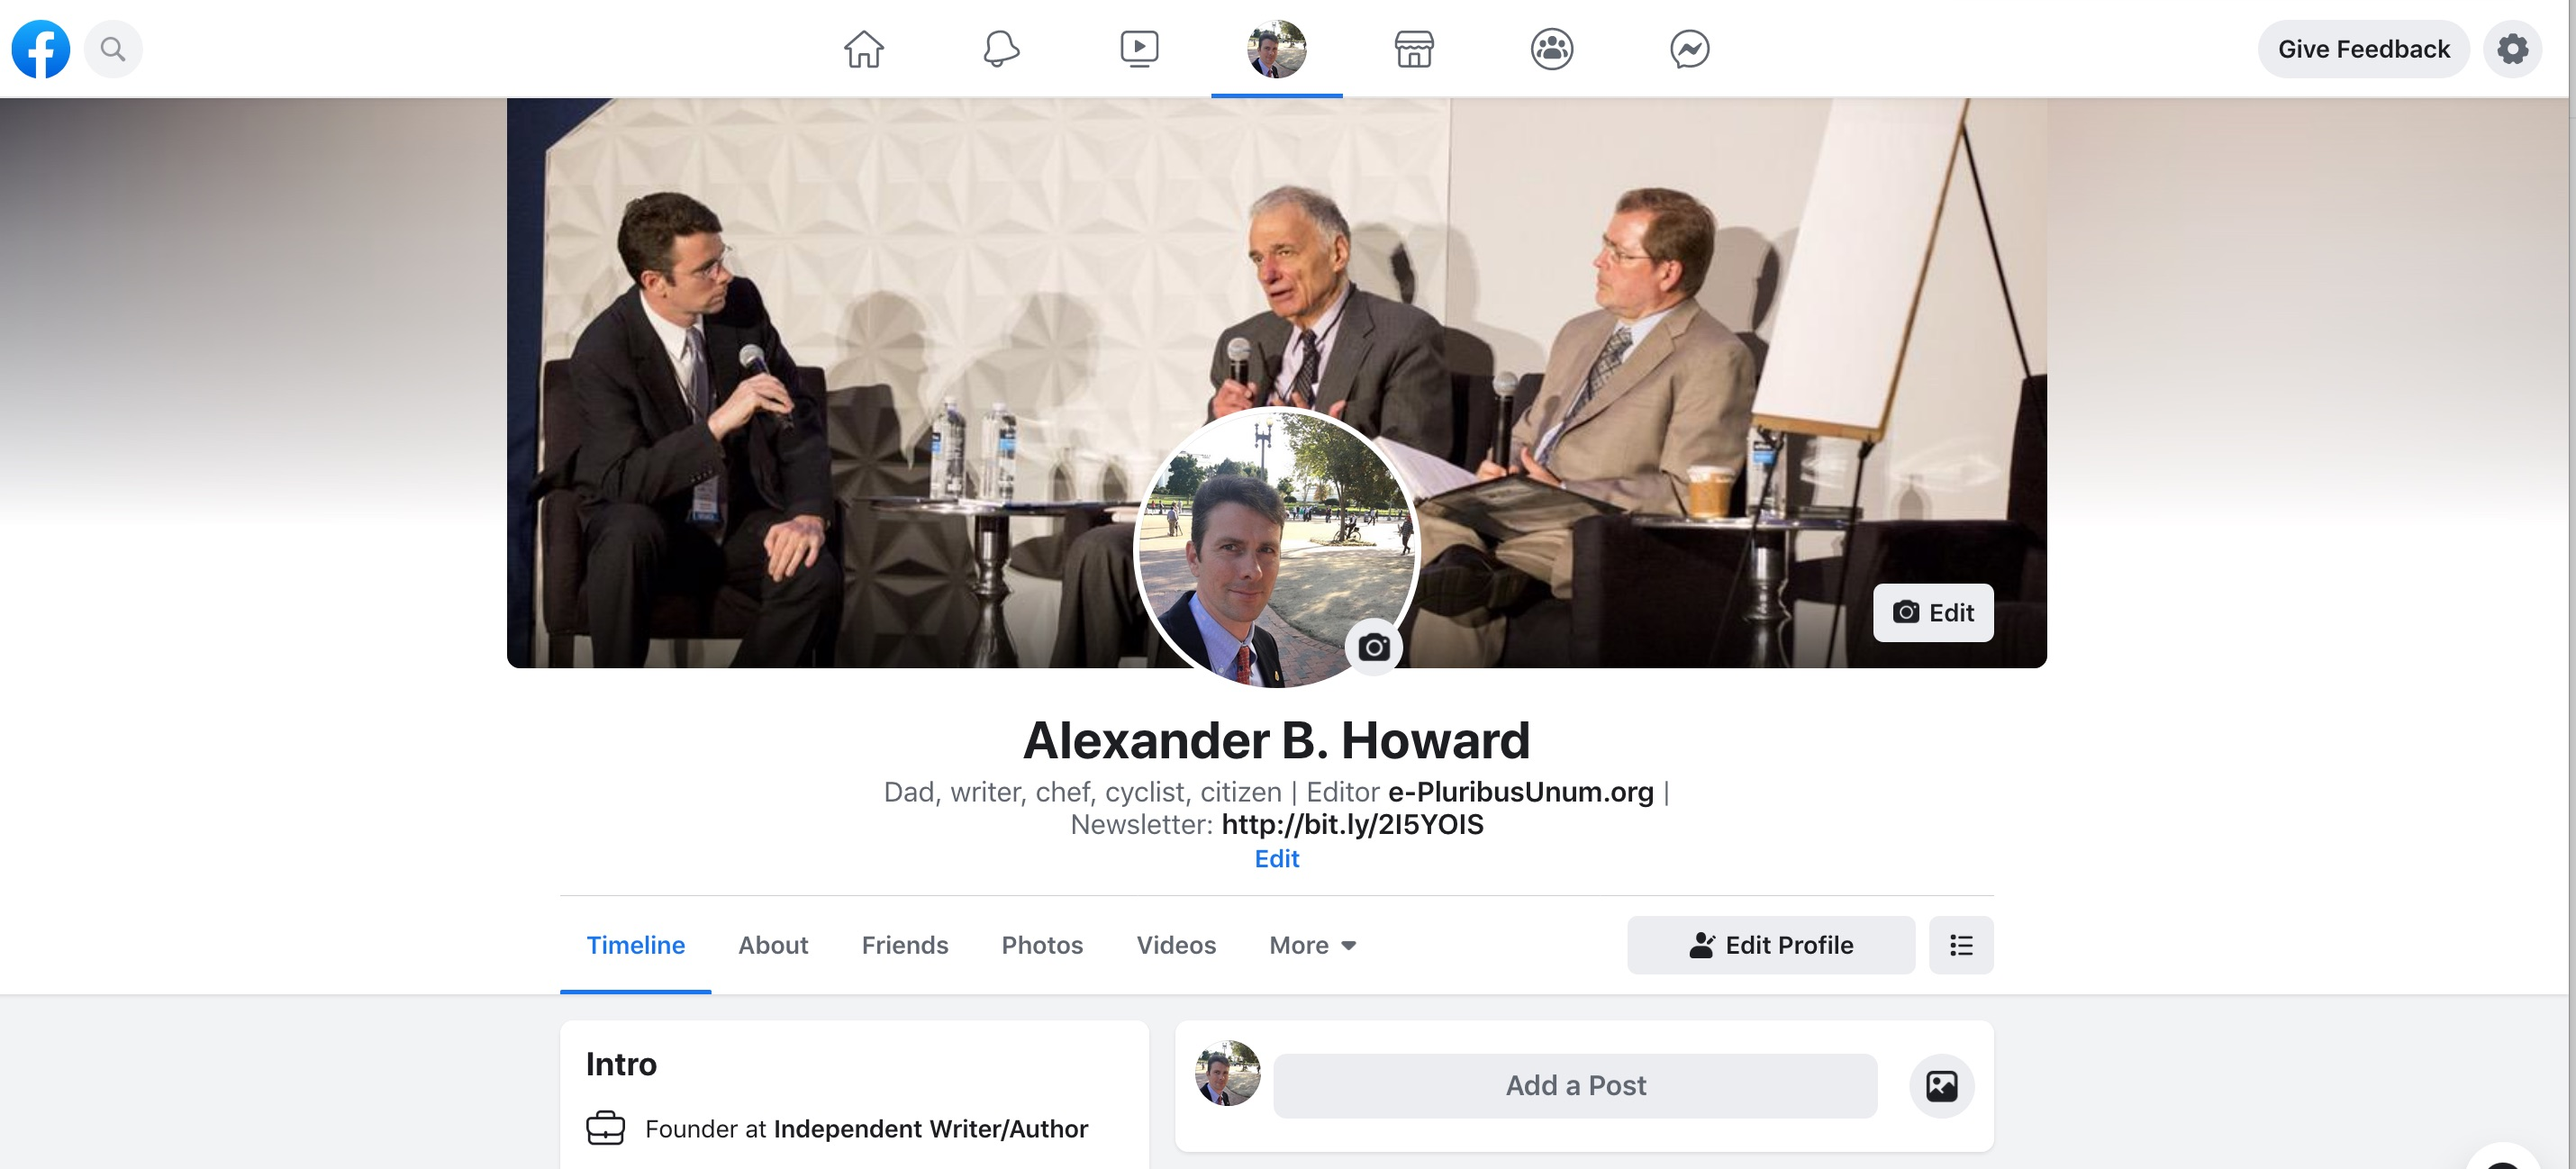 Banners_and_Alerts_and_Alexander_B__Howard___Facebook-beta-home